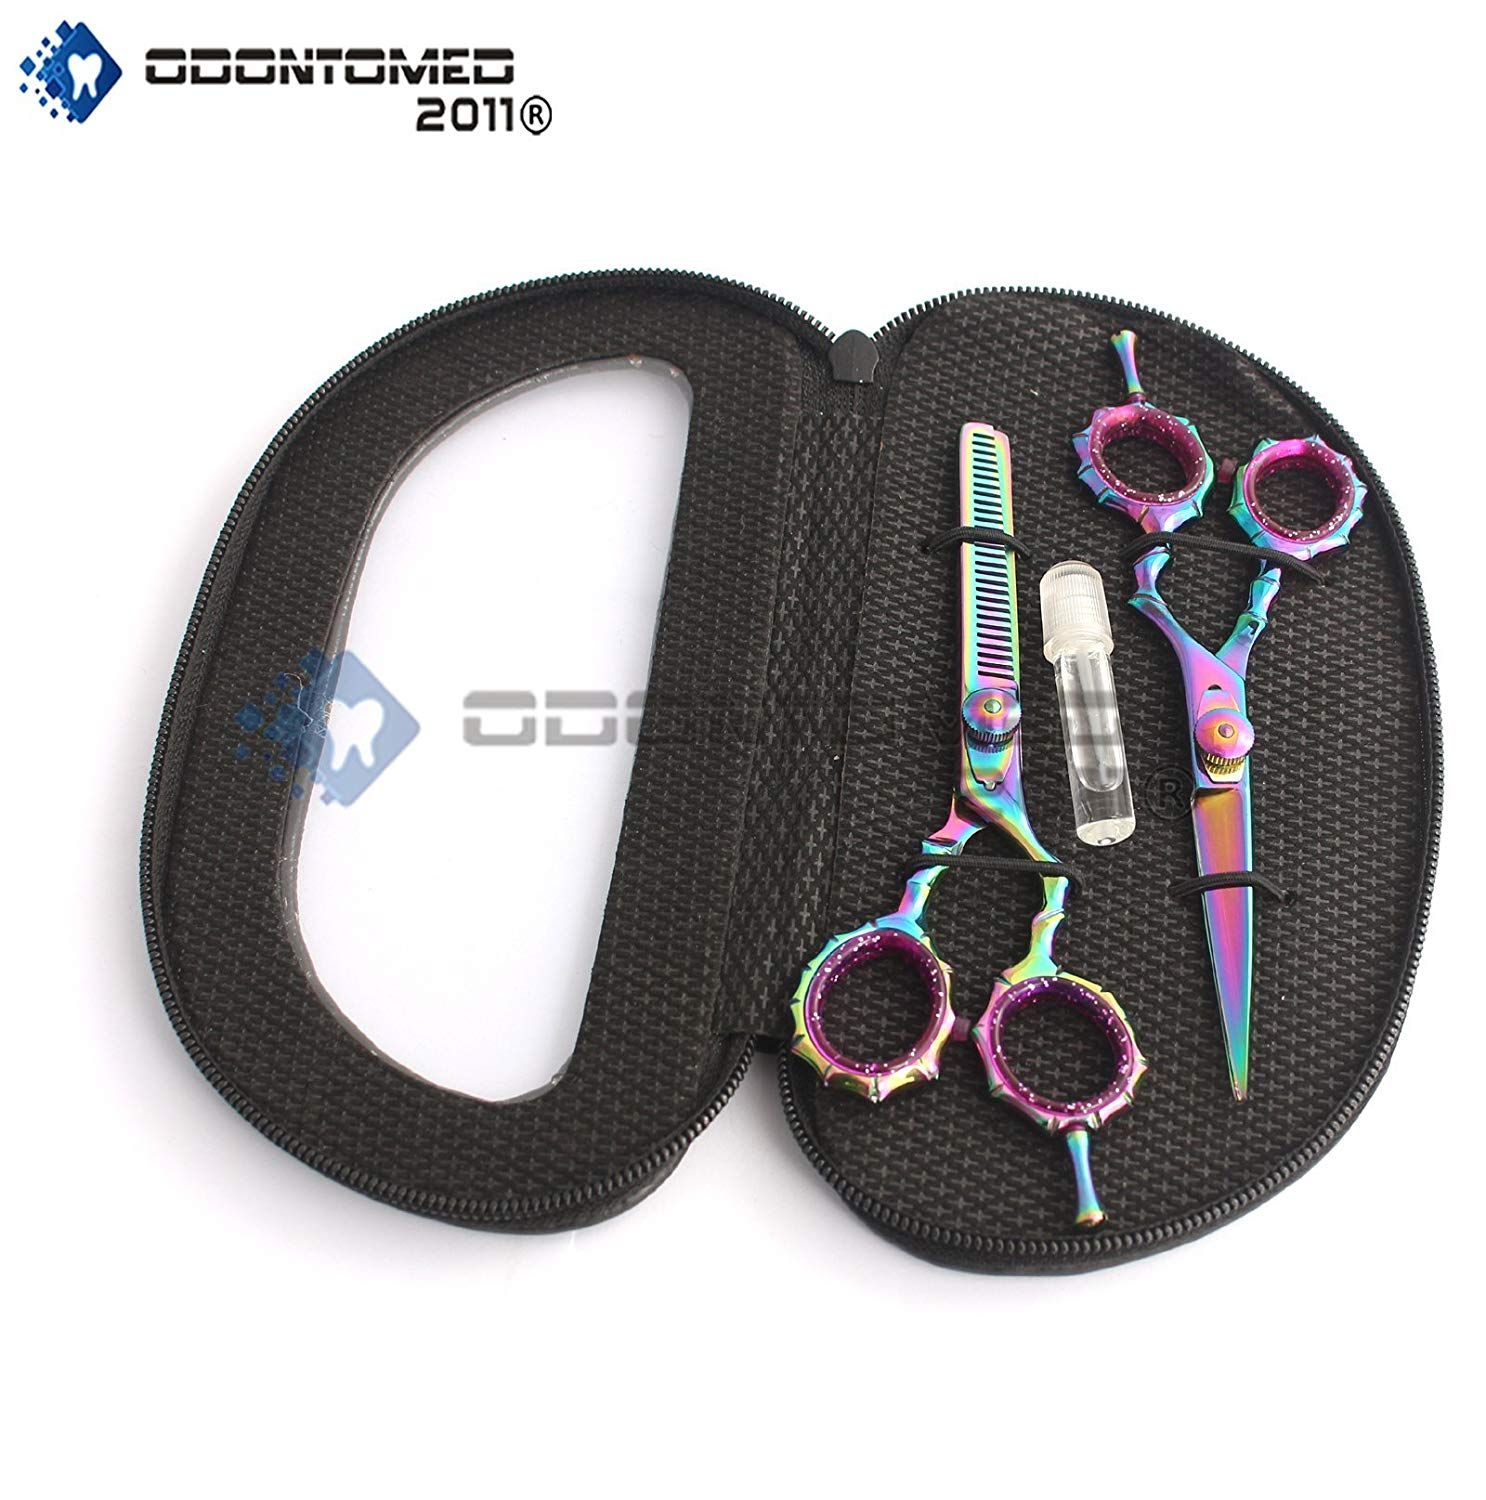 Odontomed2011 Od2011-d-1533 New Multicolor Professional Razor Edge Titanium Coated Hairdressing Scissors And Hair Thinning Scissors/shear Set 5.5 Inch (14cm)+ Free Pouch & Scissor Lubricant